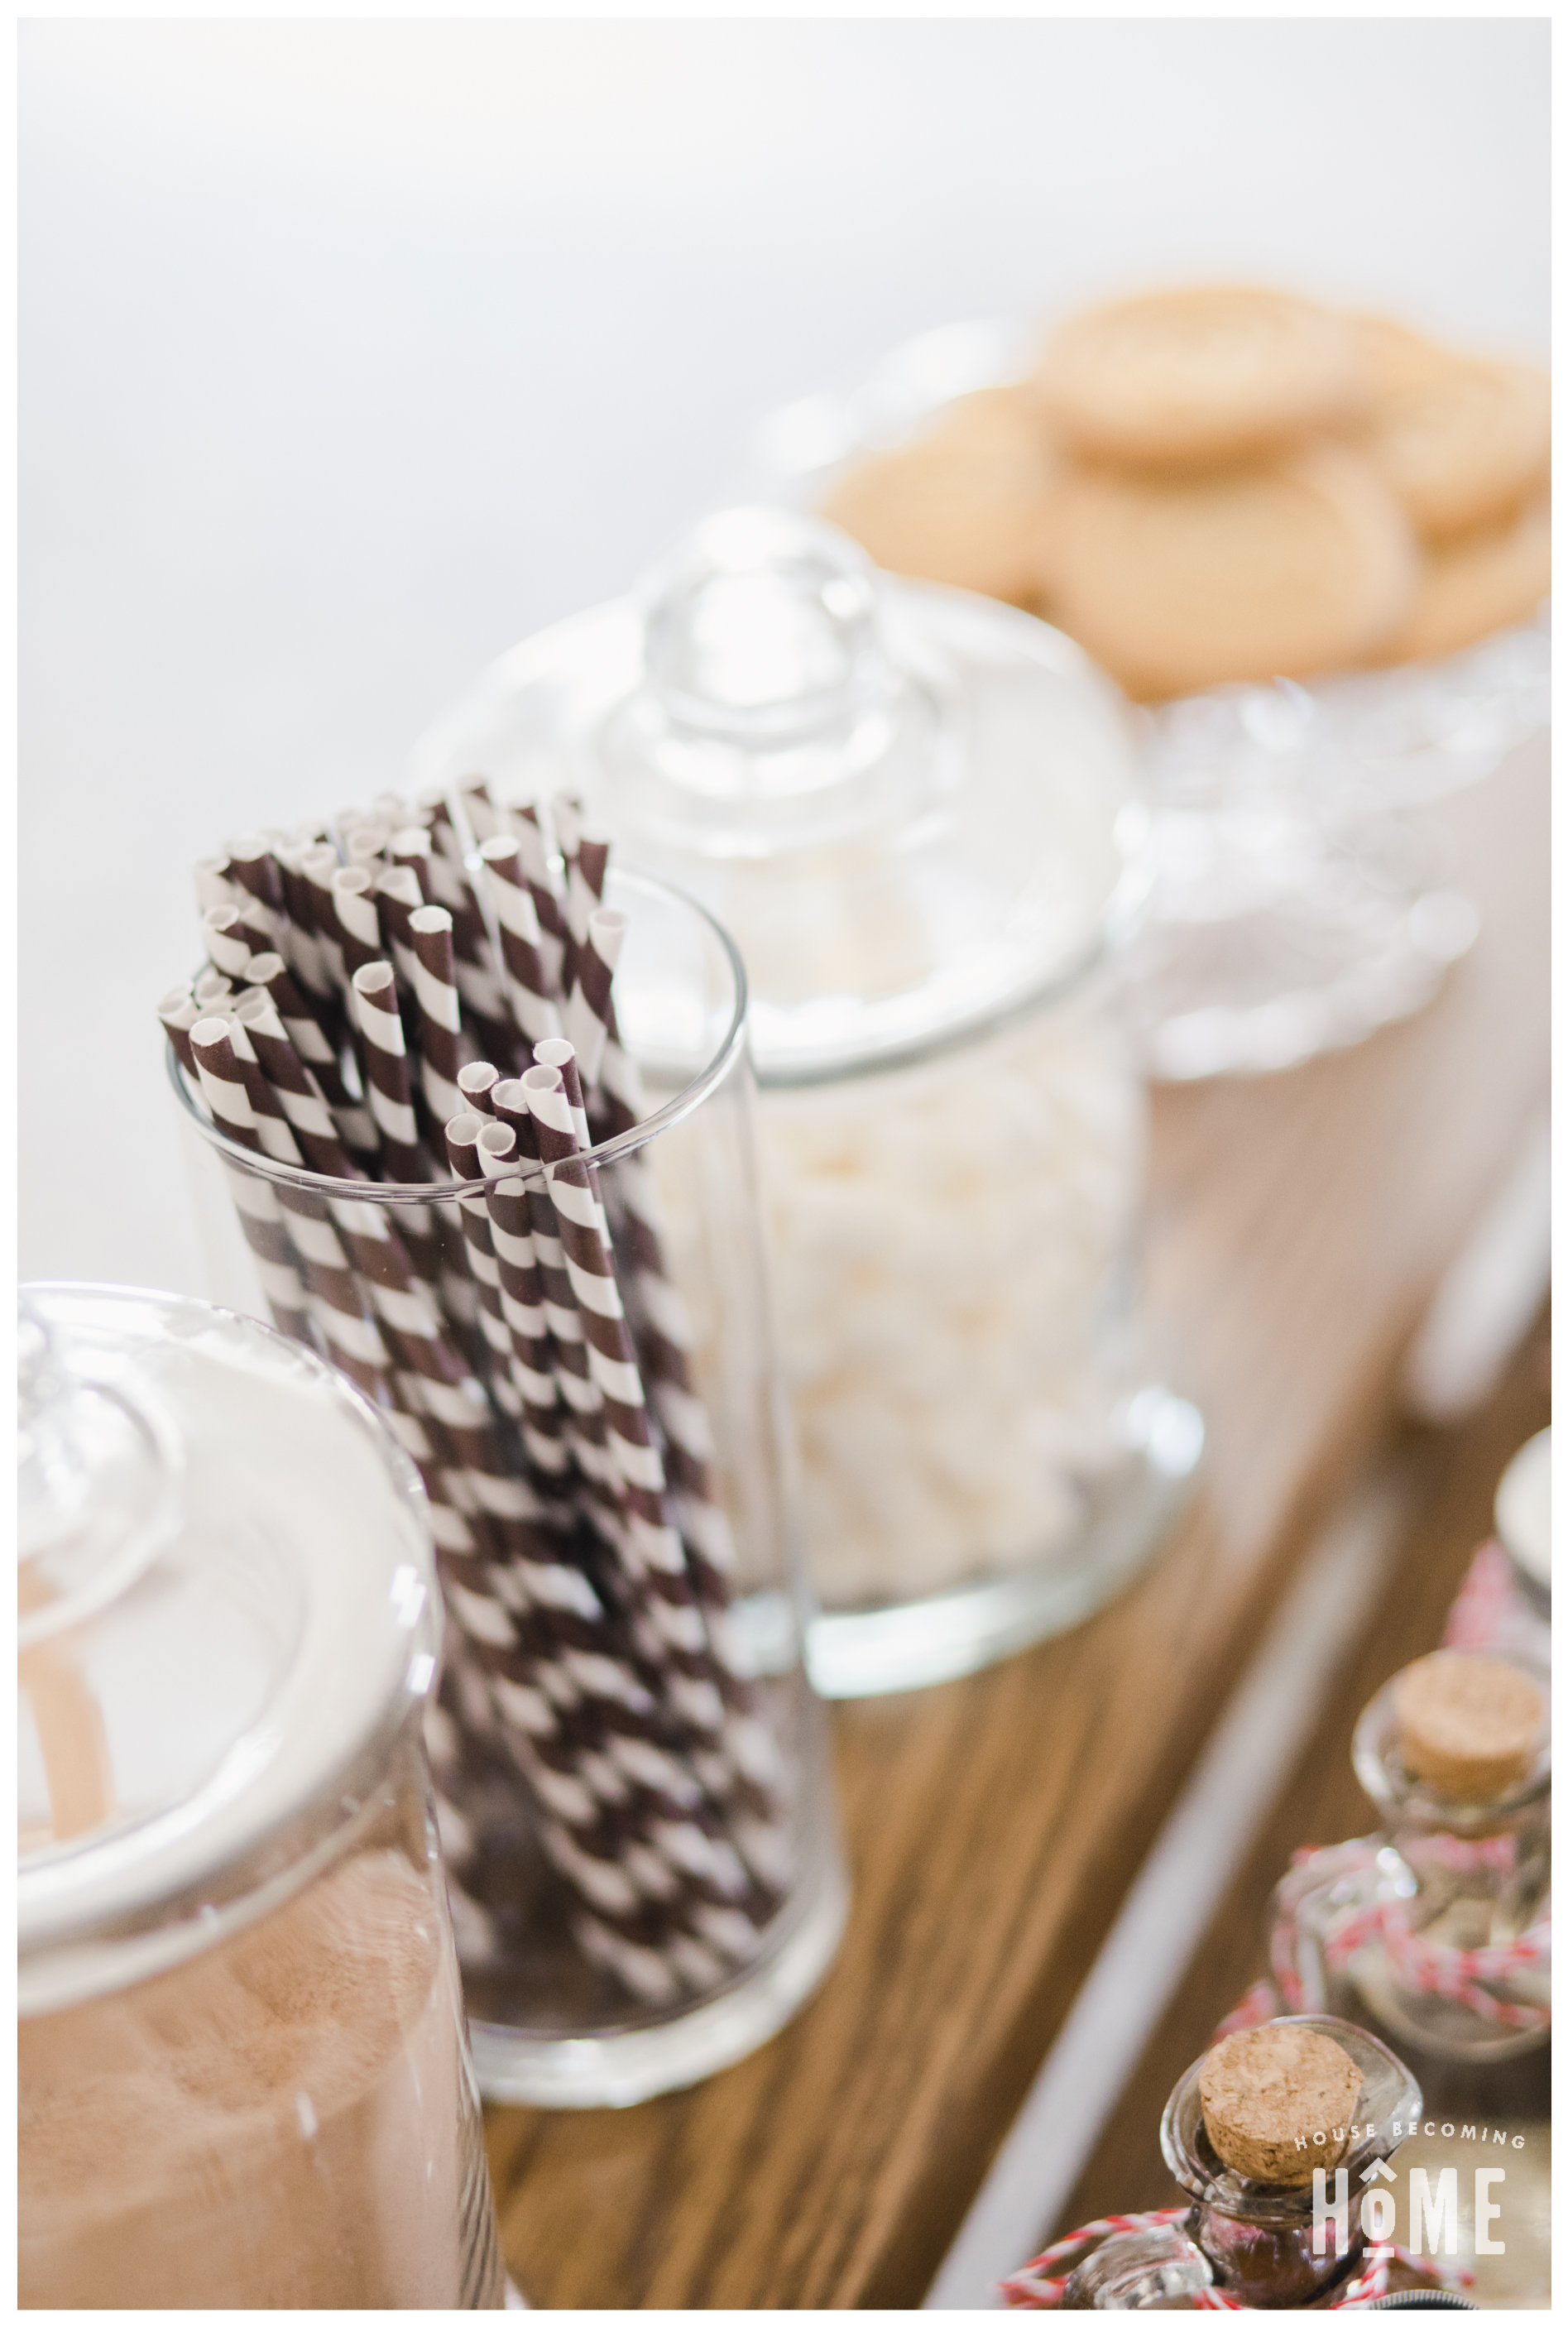 Hot Cocoa Bar with Brown and White Paper Straws in glass vase